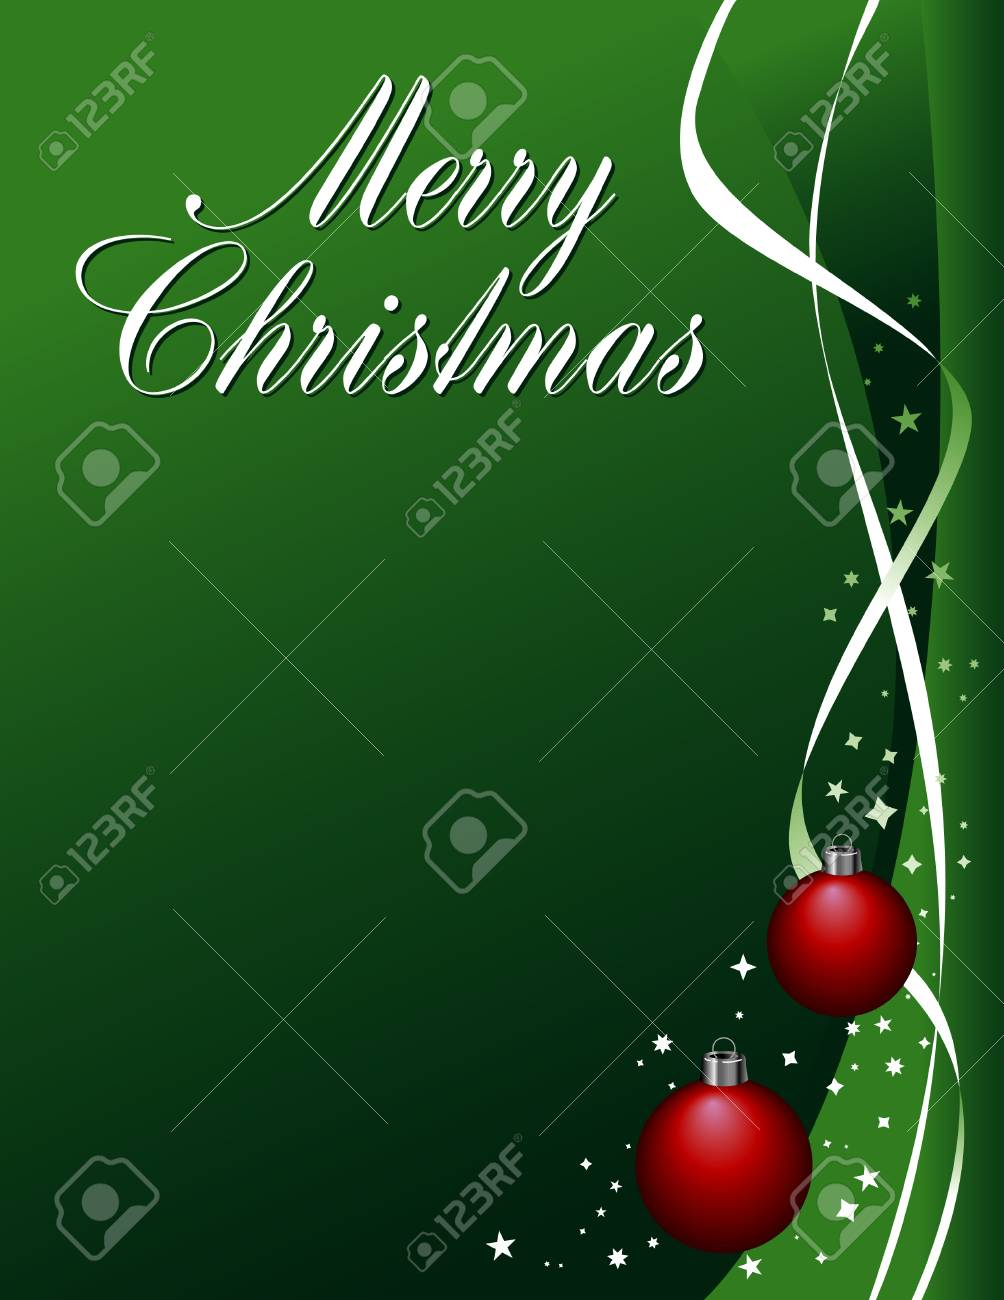 A Merry Christmas vector winter holiday background Stock Vector - 4198032